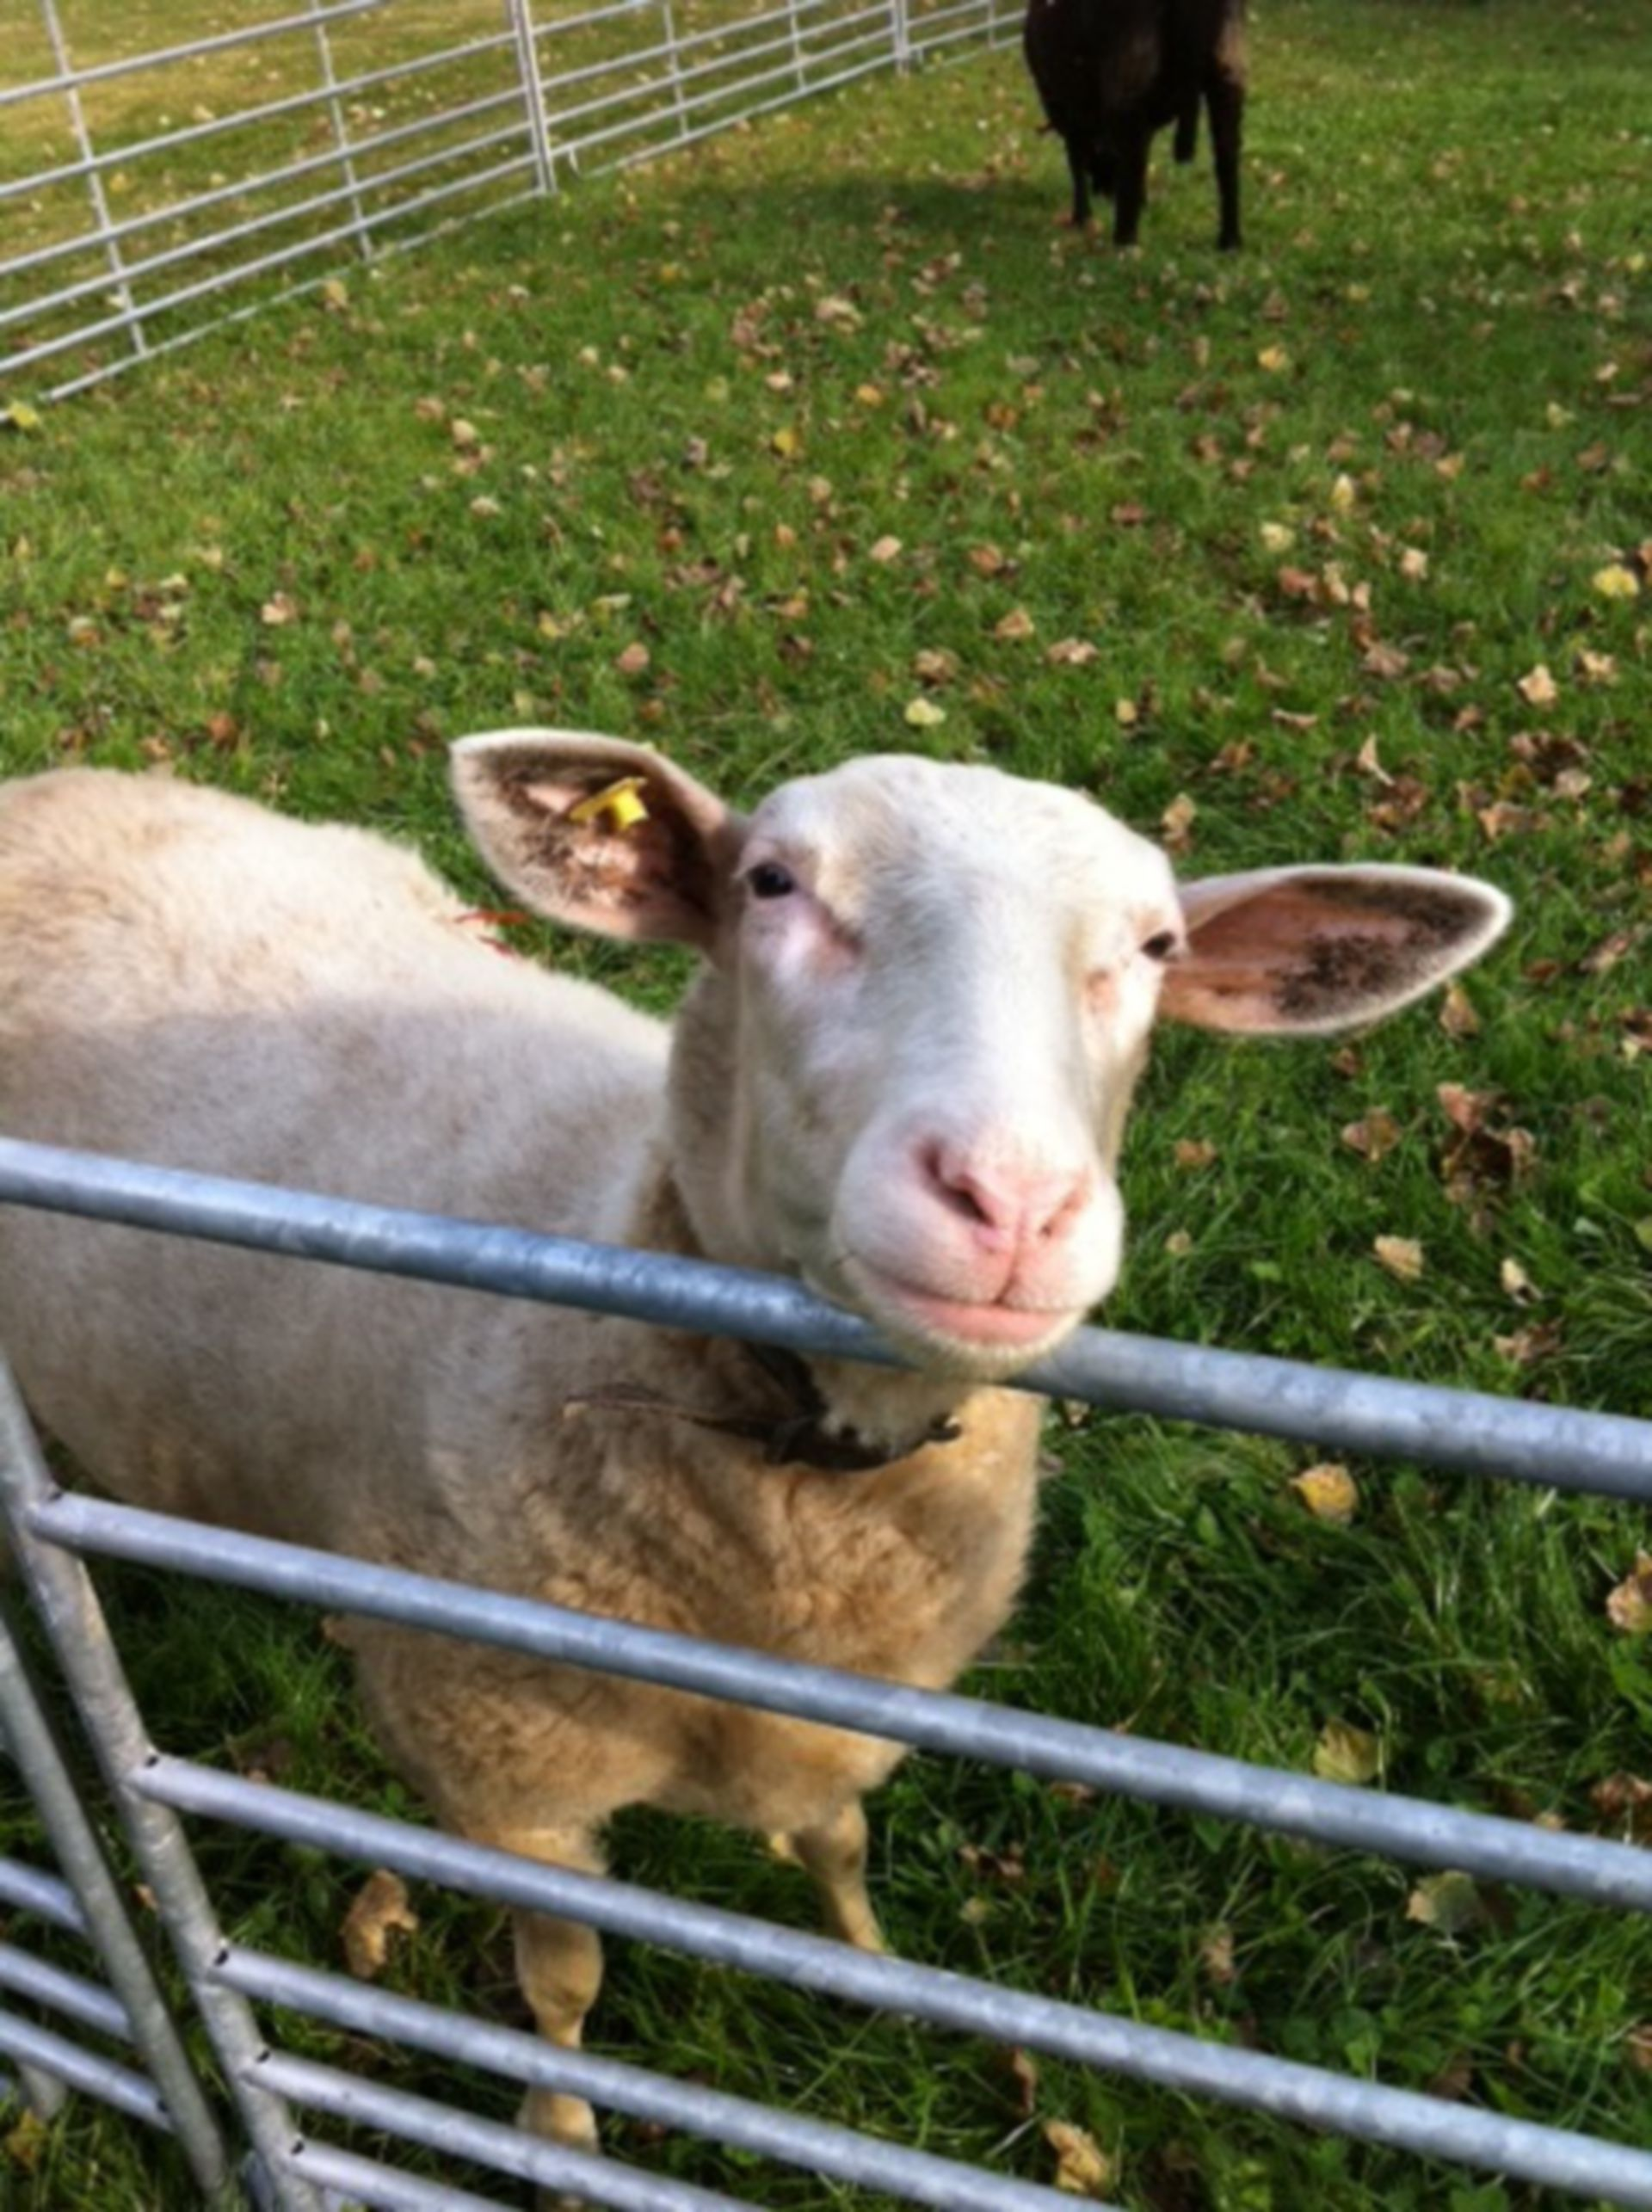 Sheep - open-minded creature